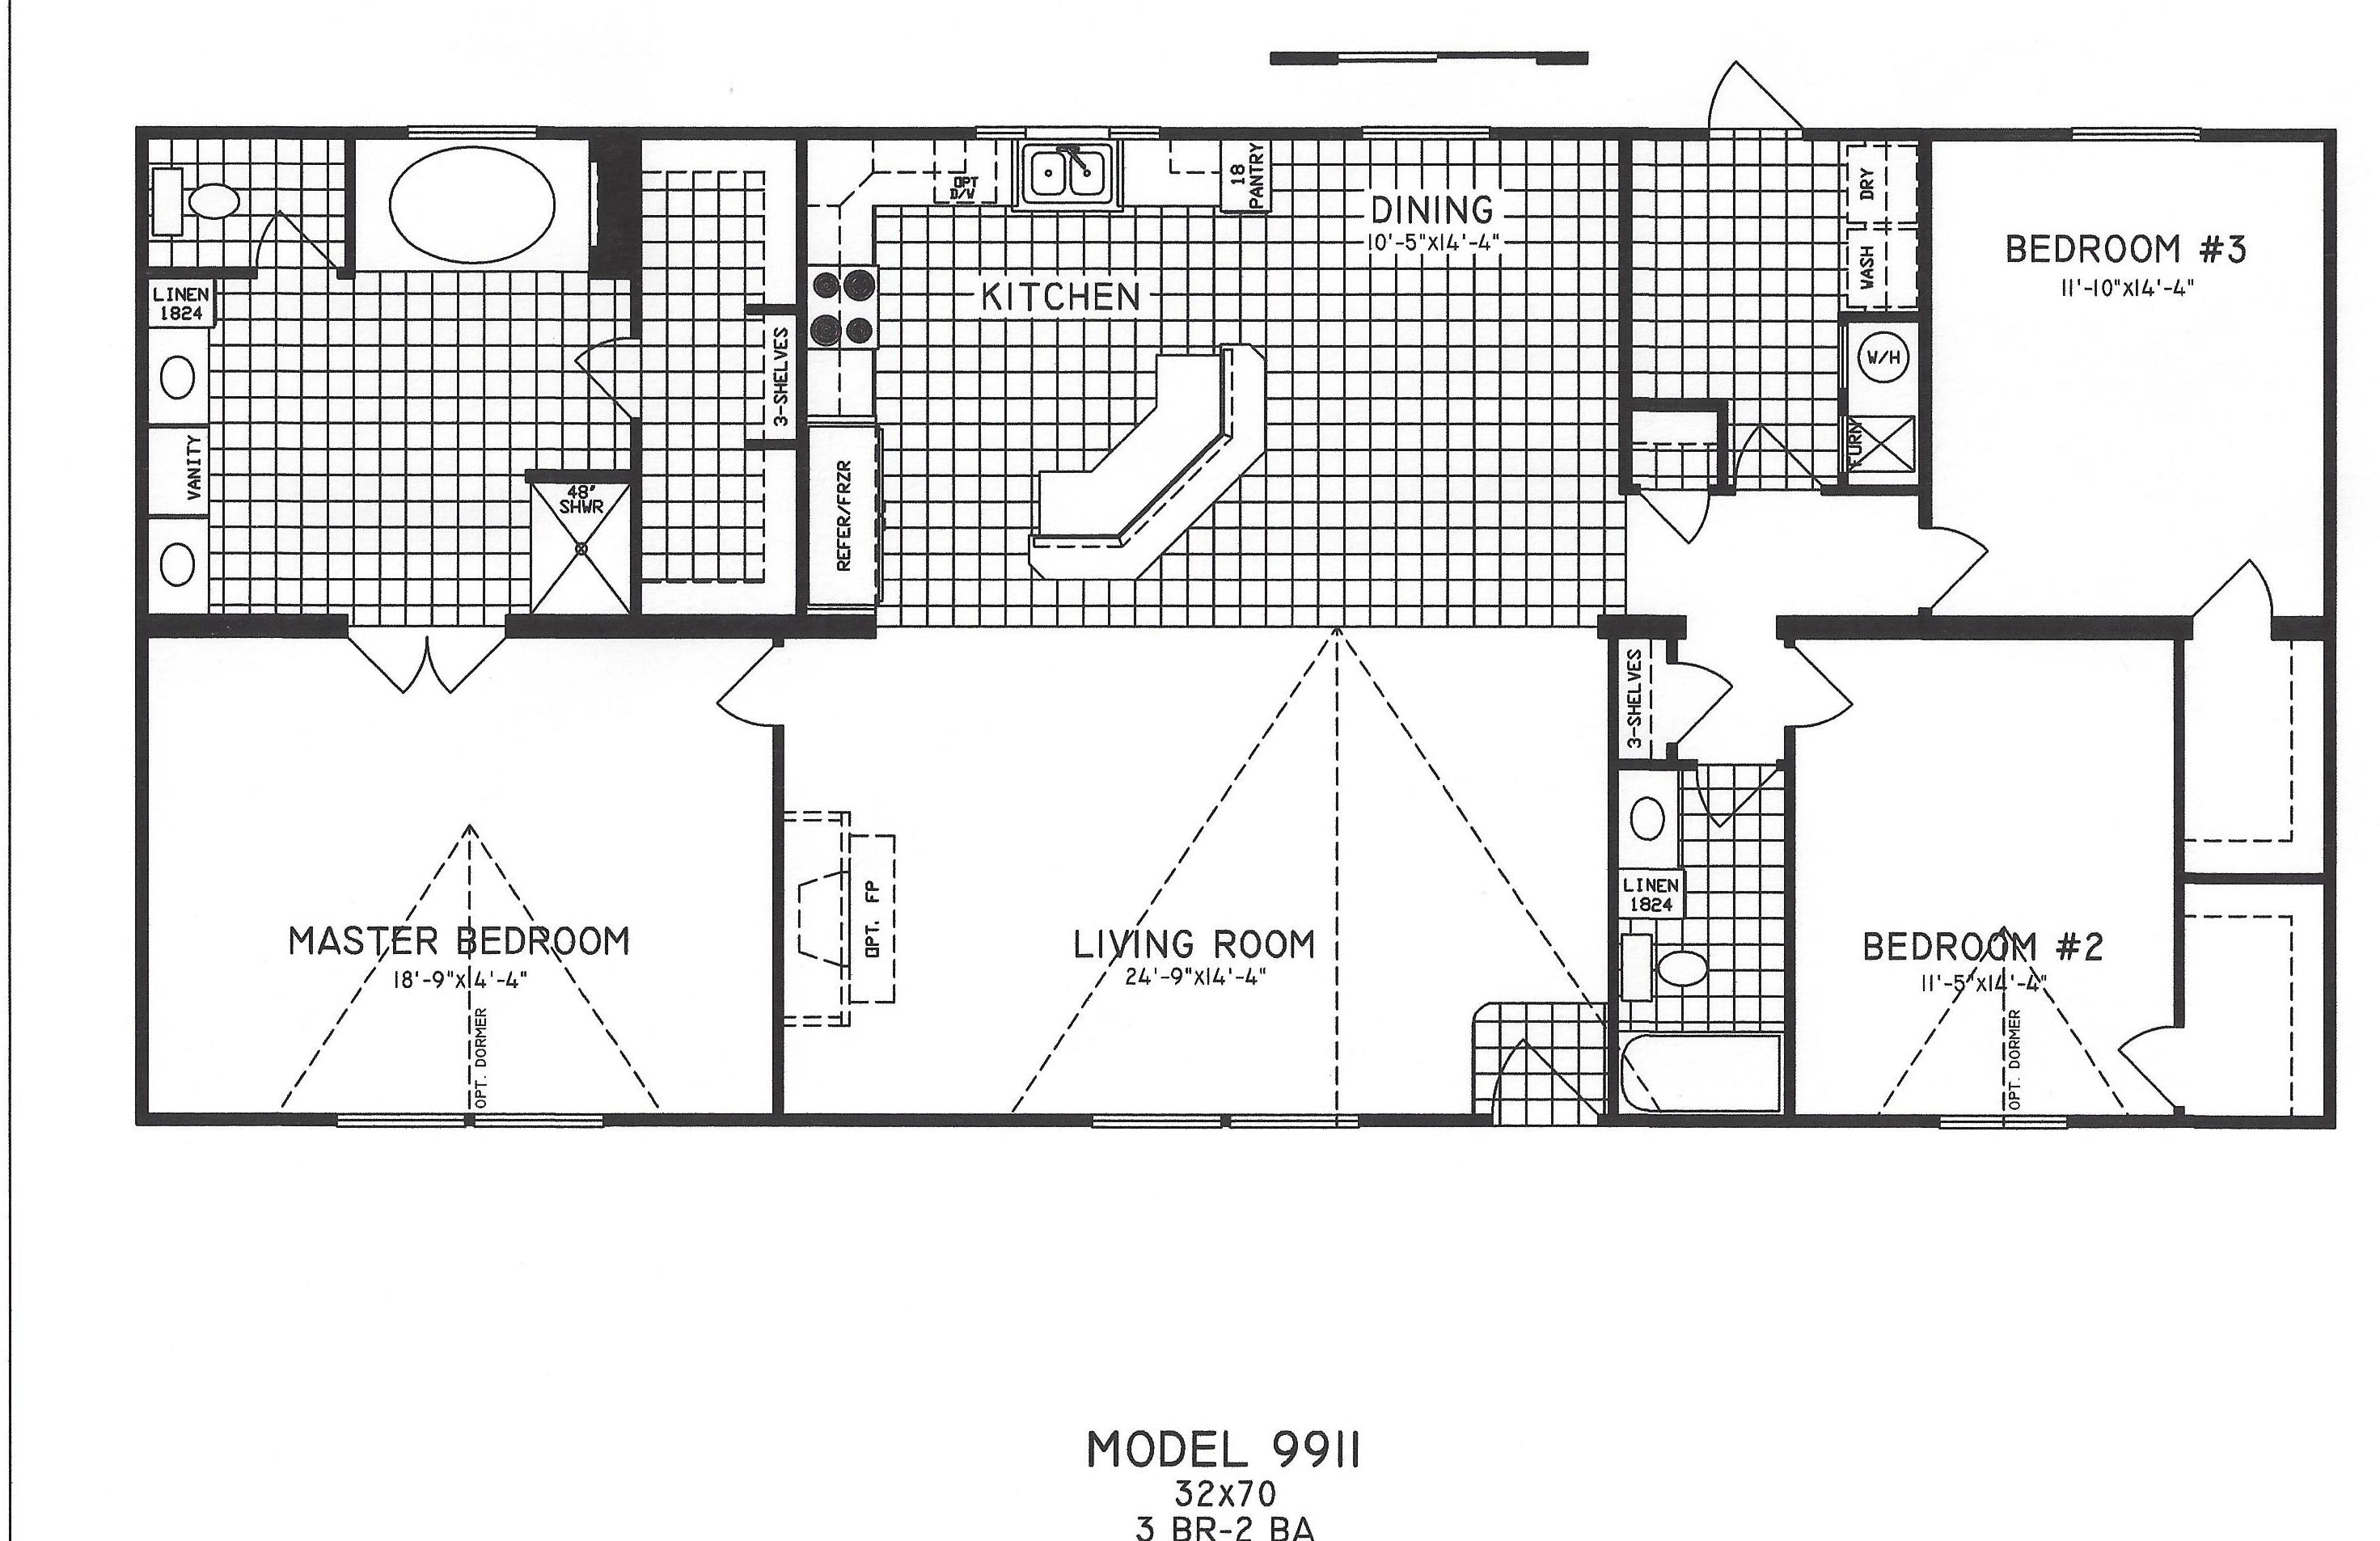 3 bedroom floor plan c 9911 hawks homes manufactured 3 bedroom open floor plan